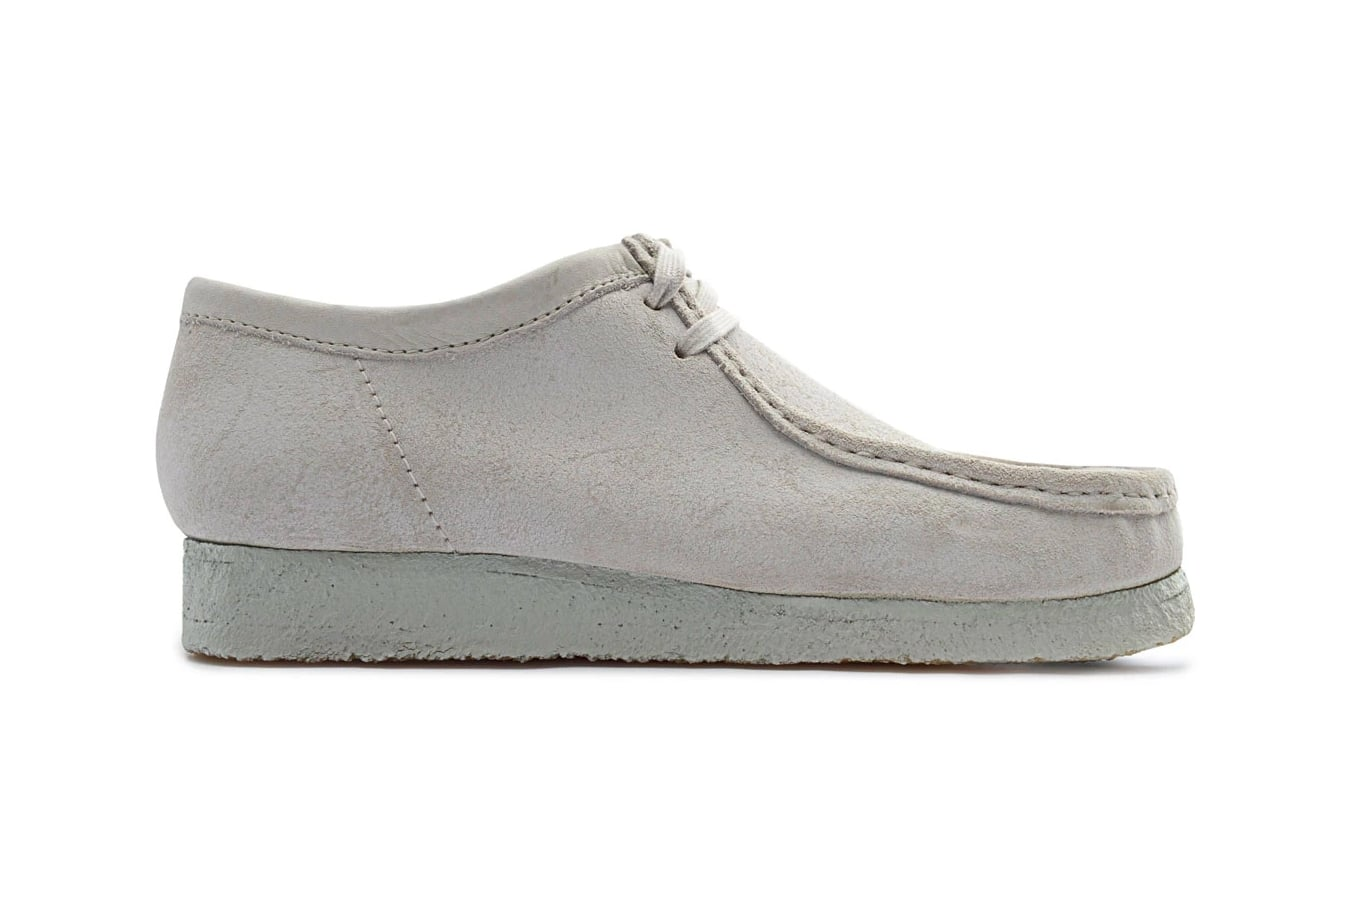 clarks wallabee white chalky suede